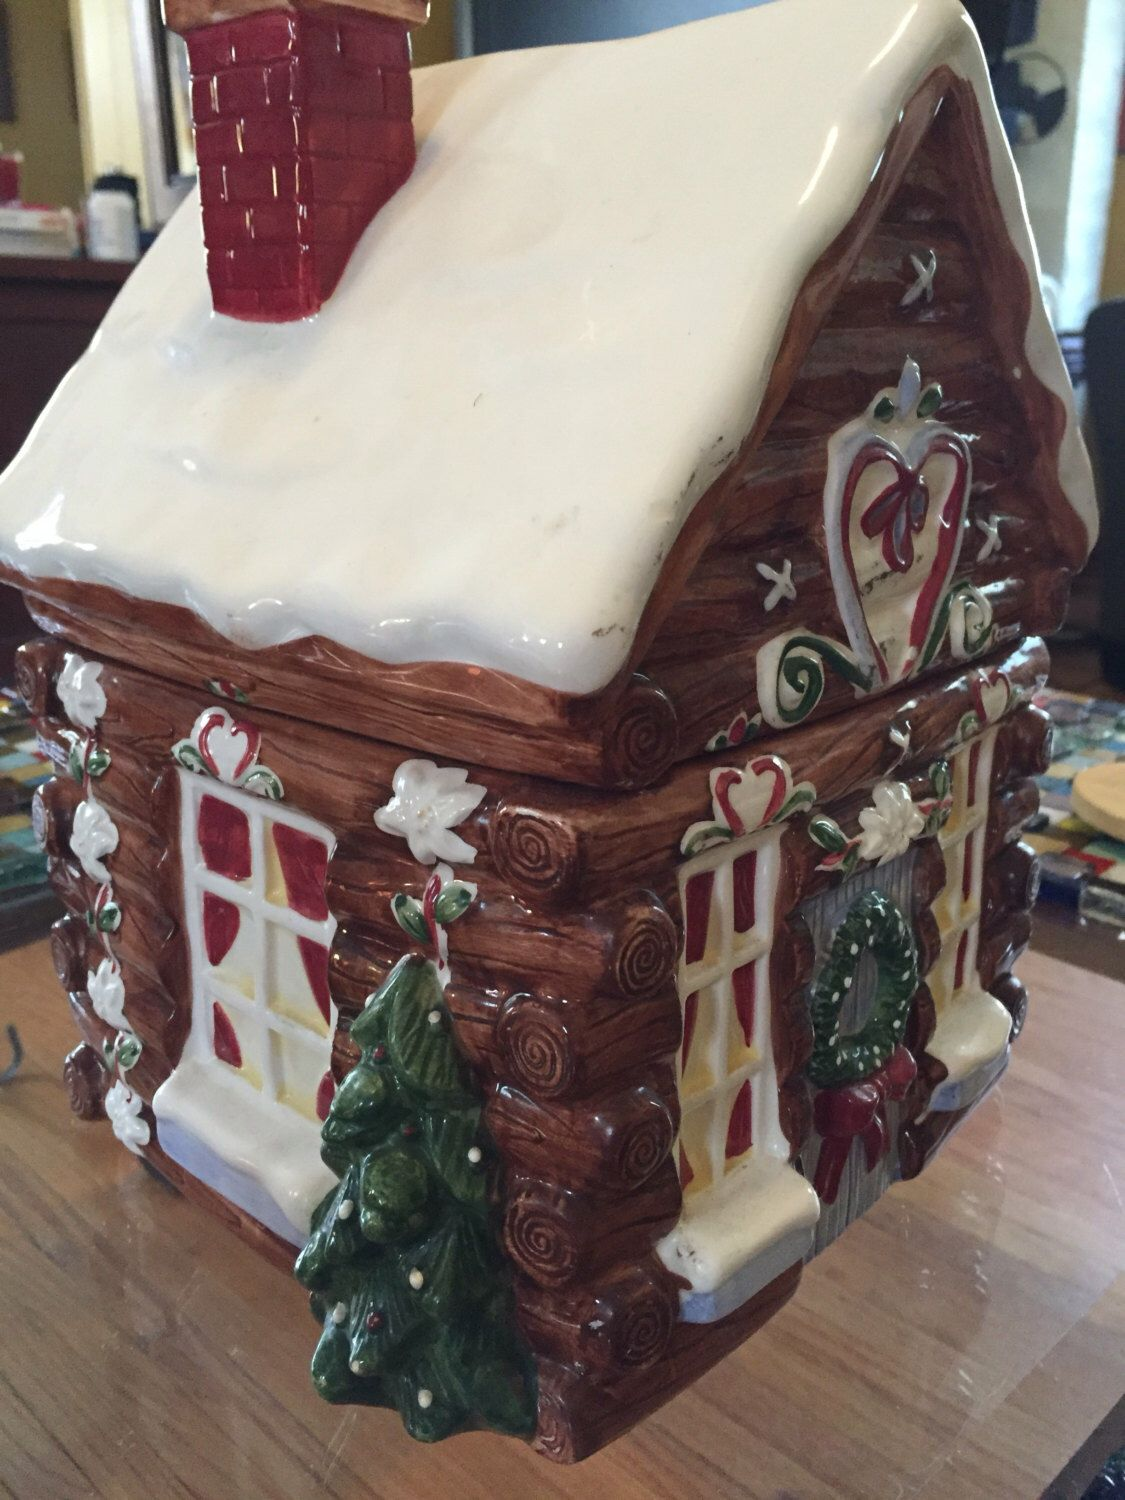 Gingerbread Christmas cottage cookie jar by VendimioCollective on Etsy https://www.etsy.com/listing/461571220/gingerbread-christmas-cottage-cookie-jar